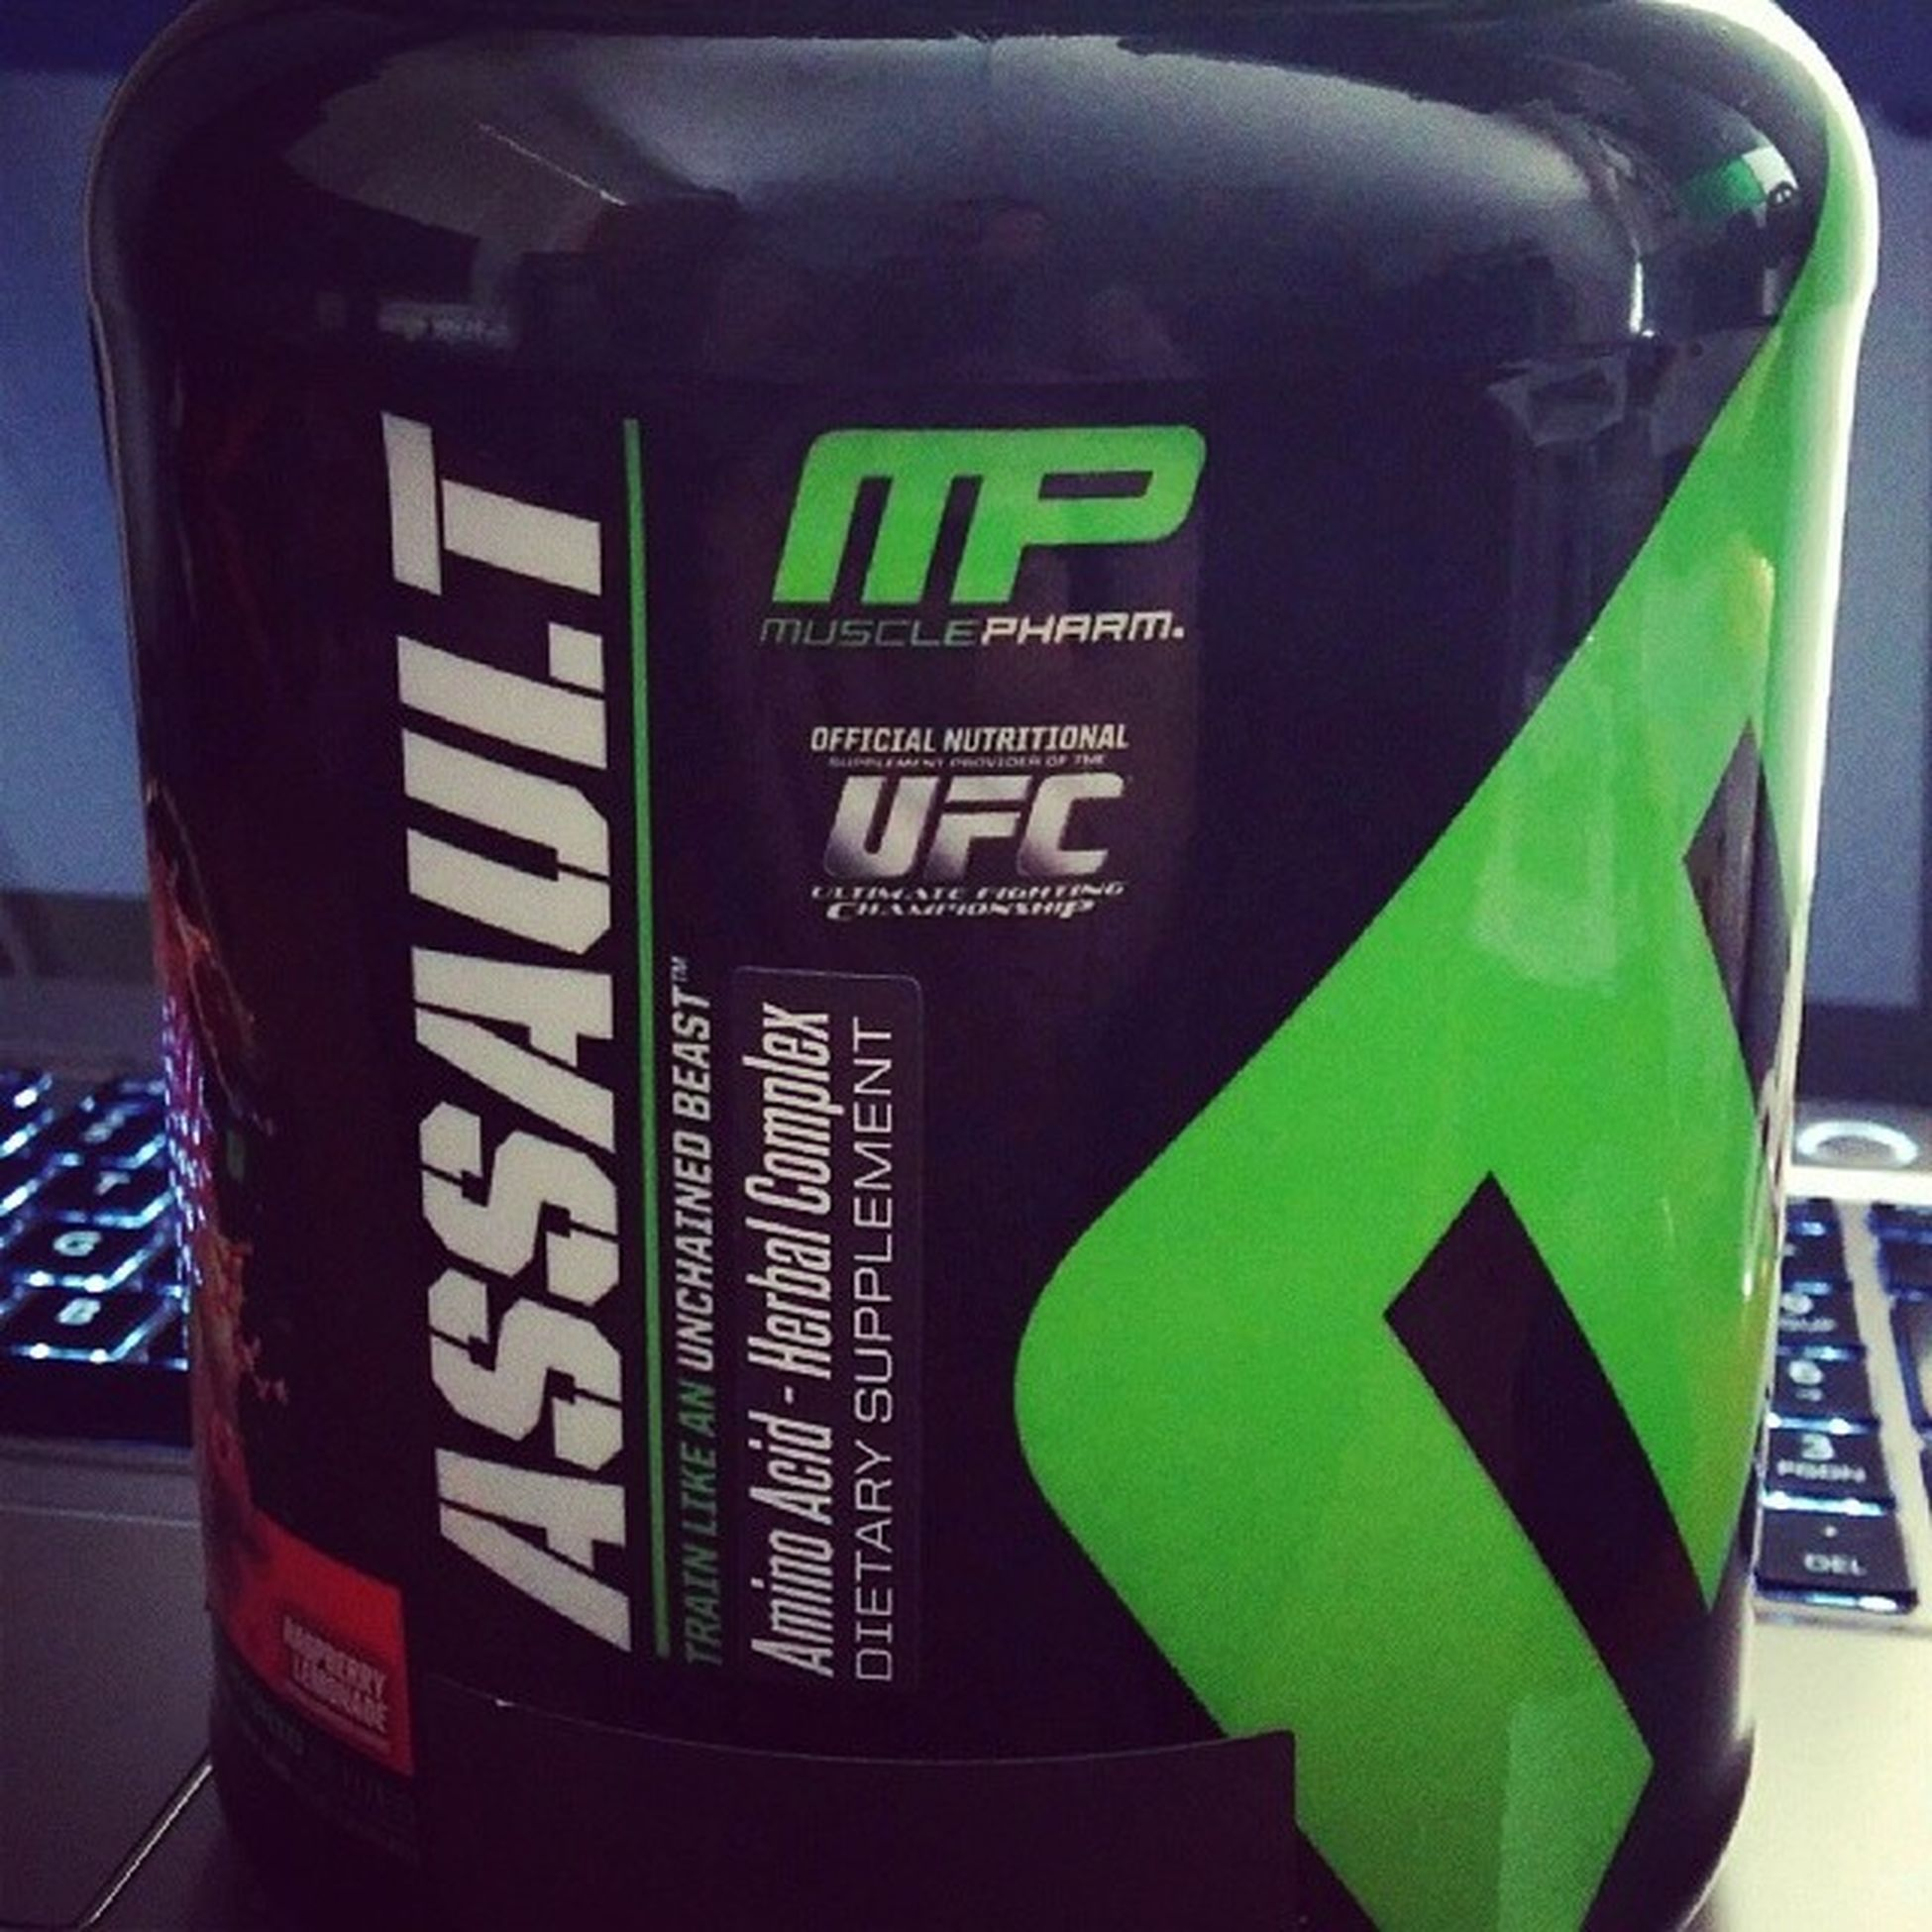 I've tried a lot of pre-workouts in the past, but never one from MP. Hopefully it's good stuff. MP Musclepharm Assault Preworkout training gym workout